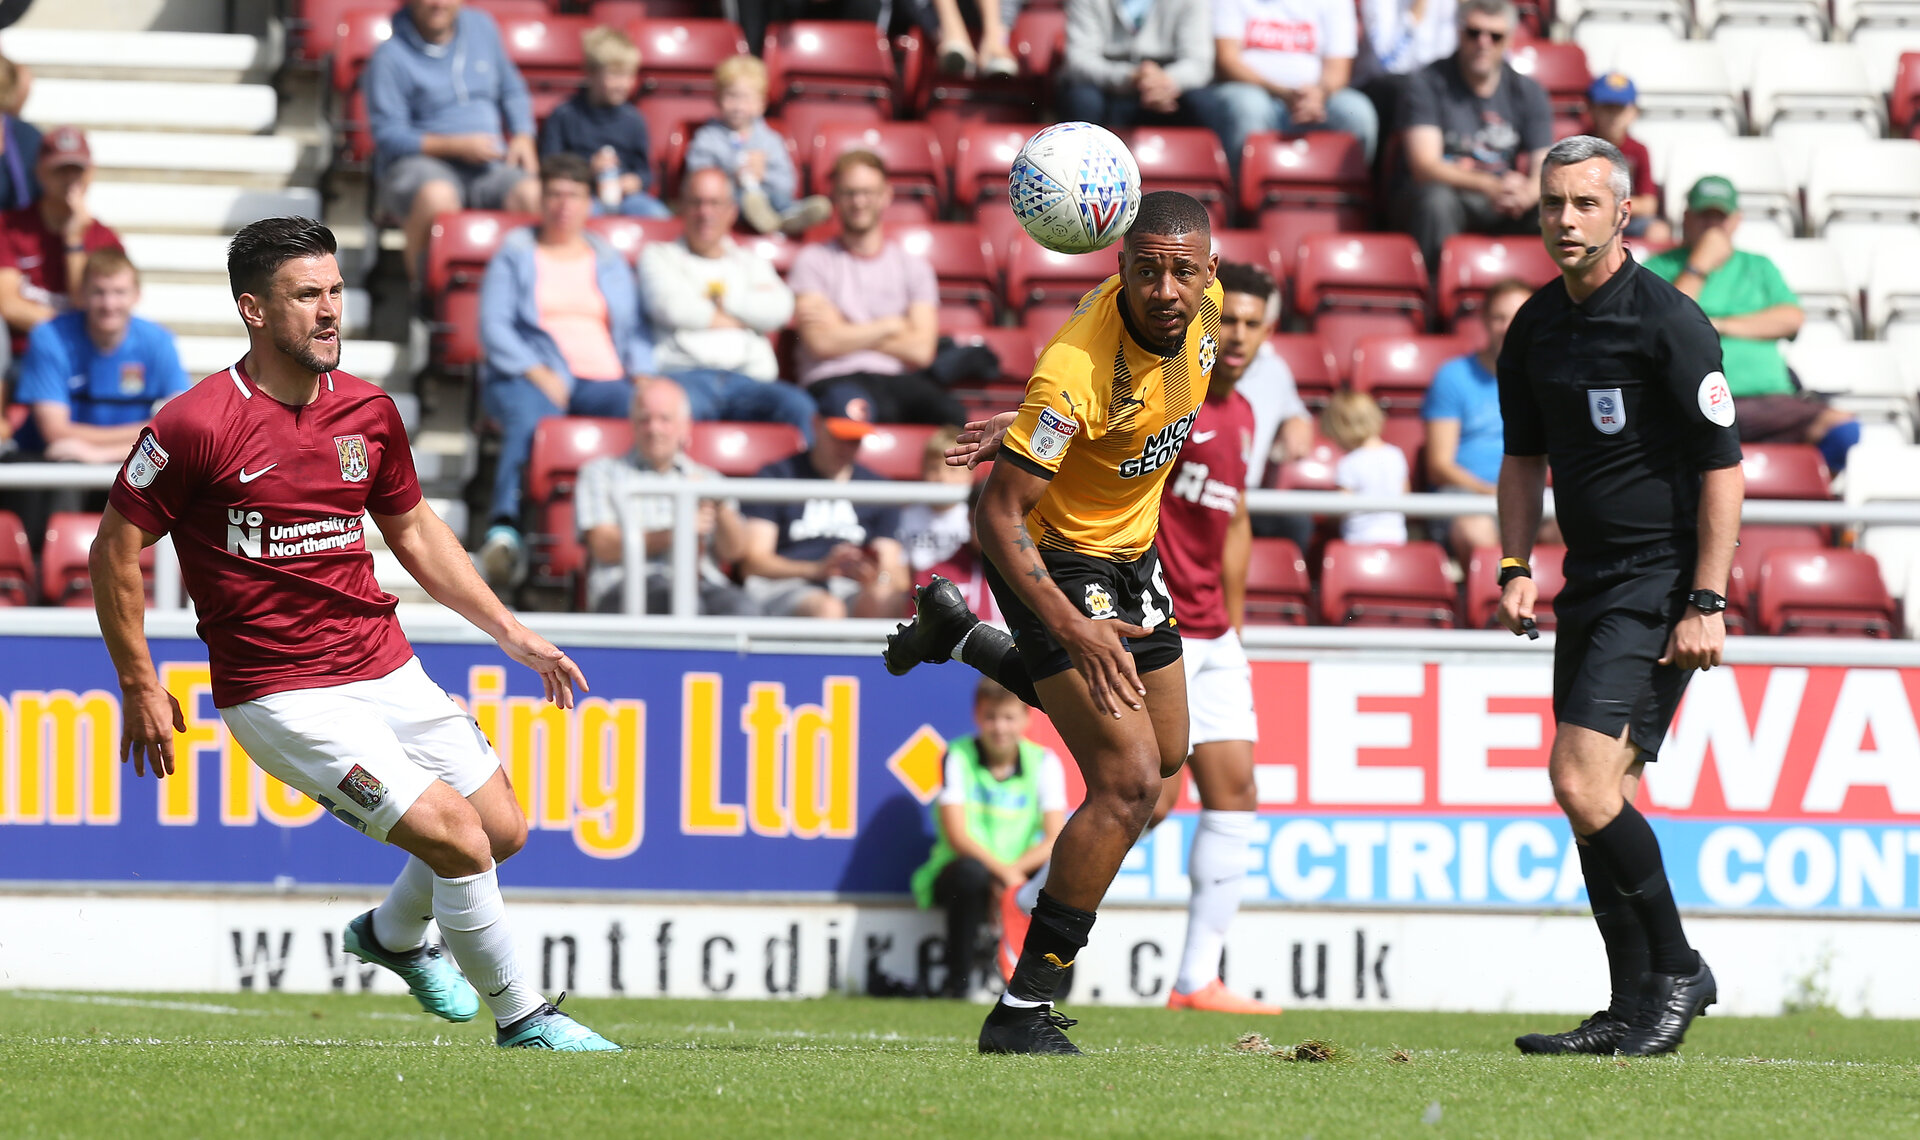 NORTHAMPTON, ENGLAND - AUGUST 18: eggie Lambe of Cambridge United looks to the ball with David Buchanan of Northampton Town and referee Seb Stockbridge during the Sky Bet League Two match between Northampton Town and Cambridge United at PTS Academy Stadium on August 18, 2018 in Northampton, United Kingdom. (Photo by Pete Norton/Getty Images)